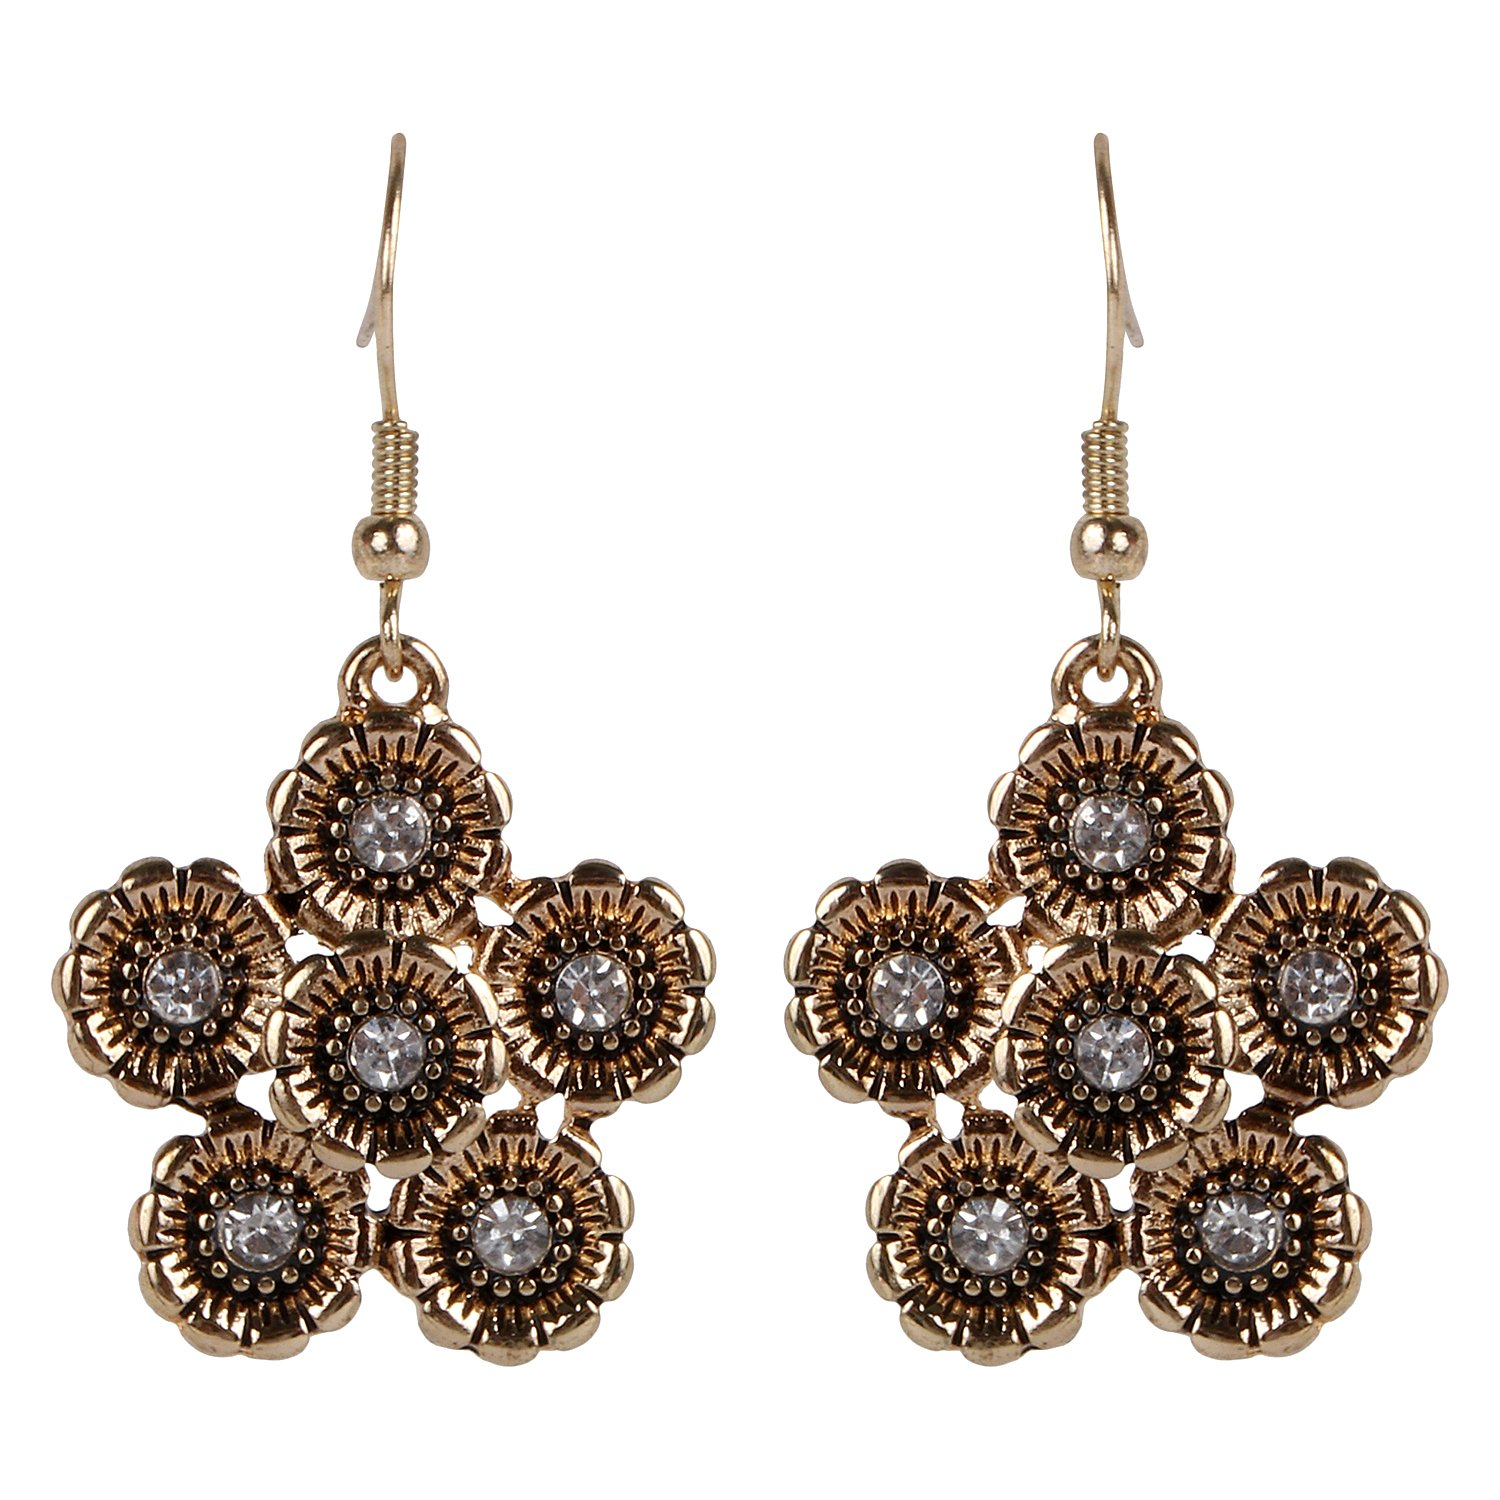 ASHIS Collection Daisy Shaped Flower Ear-Ring with Shiny Studded Crystal for Women /& Girls